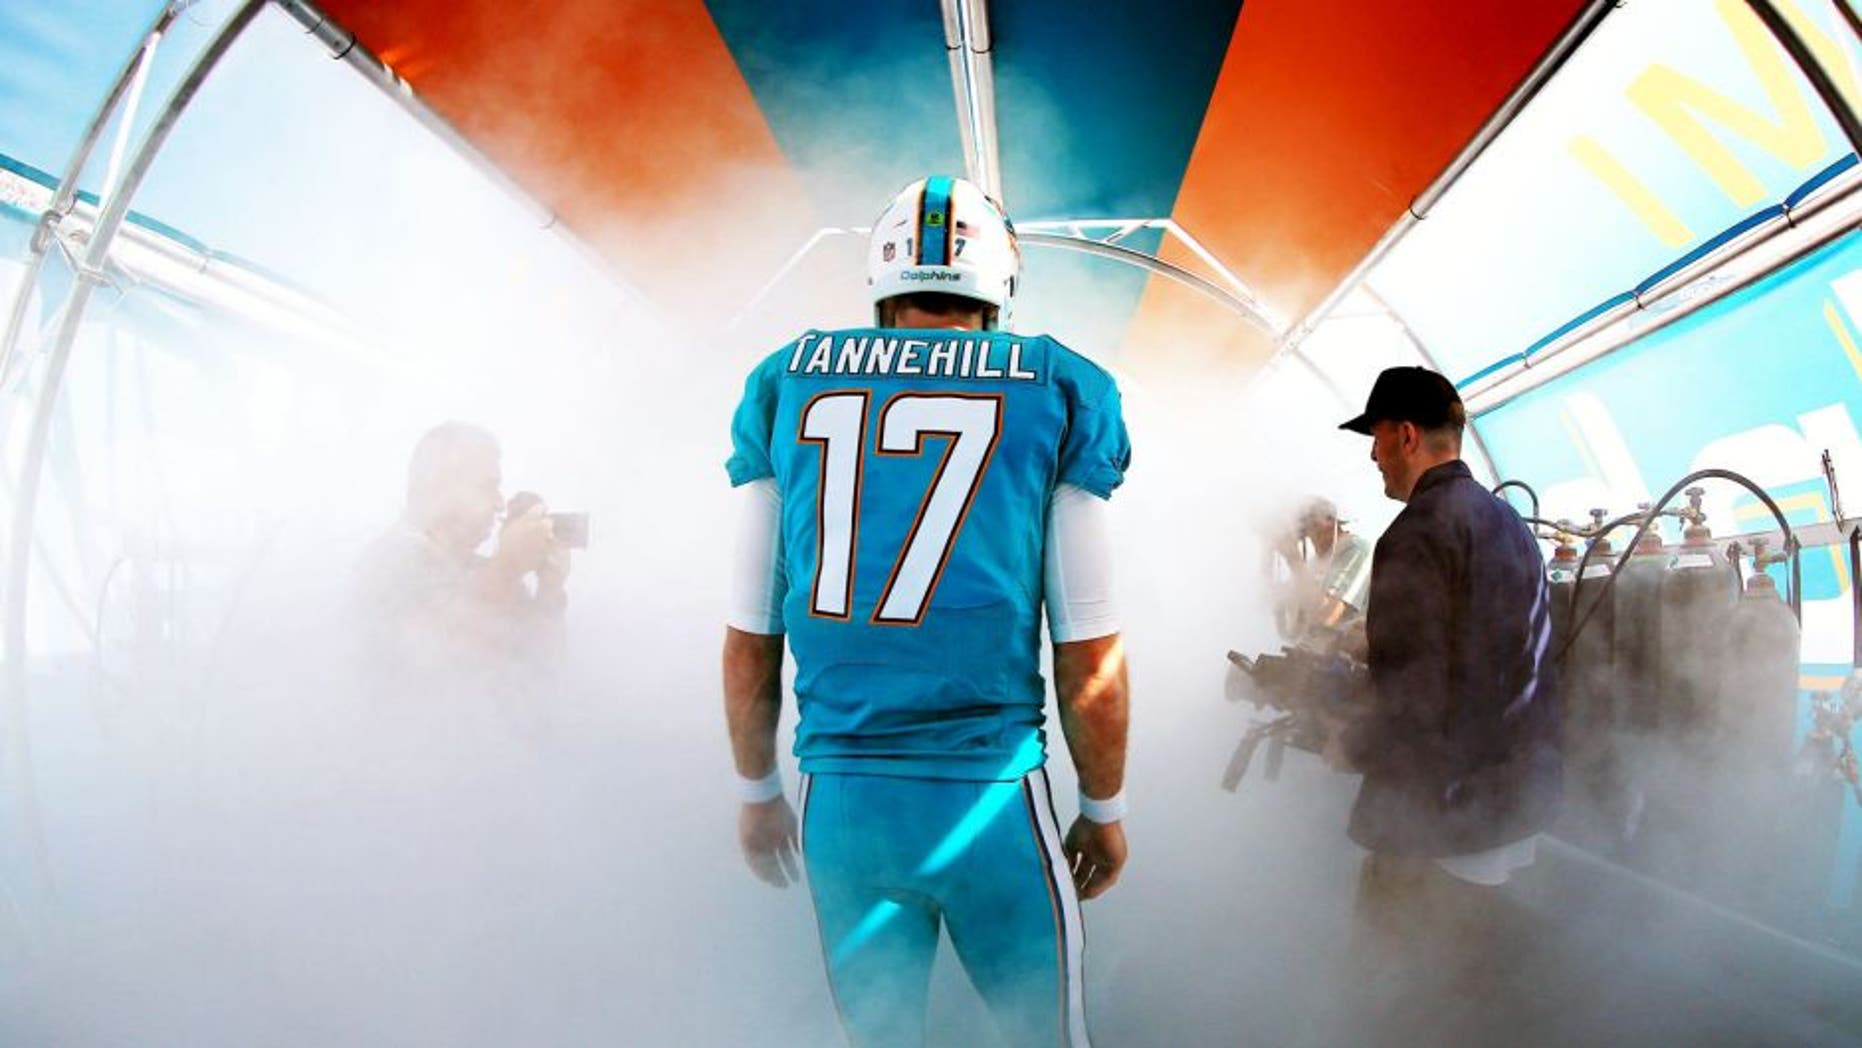 MIAMI GARDENS, FL - JANUARy 03: Ryan Tannehill #17 of the Miami Dolphins prepares to take the field before the game against the New England Patriots at Sun Life Stadium on January 3, 2016 in Miami Gardens, Florida. (Photo by Mike Ehrmann/Getty Images)